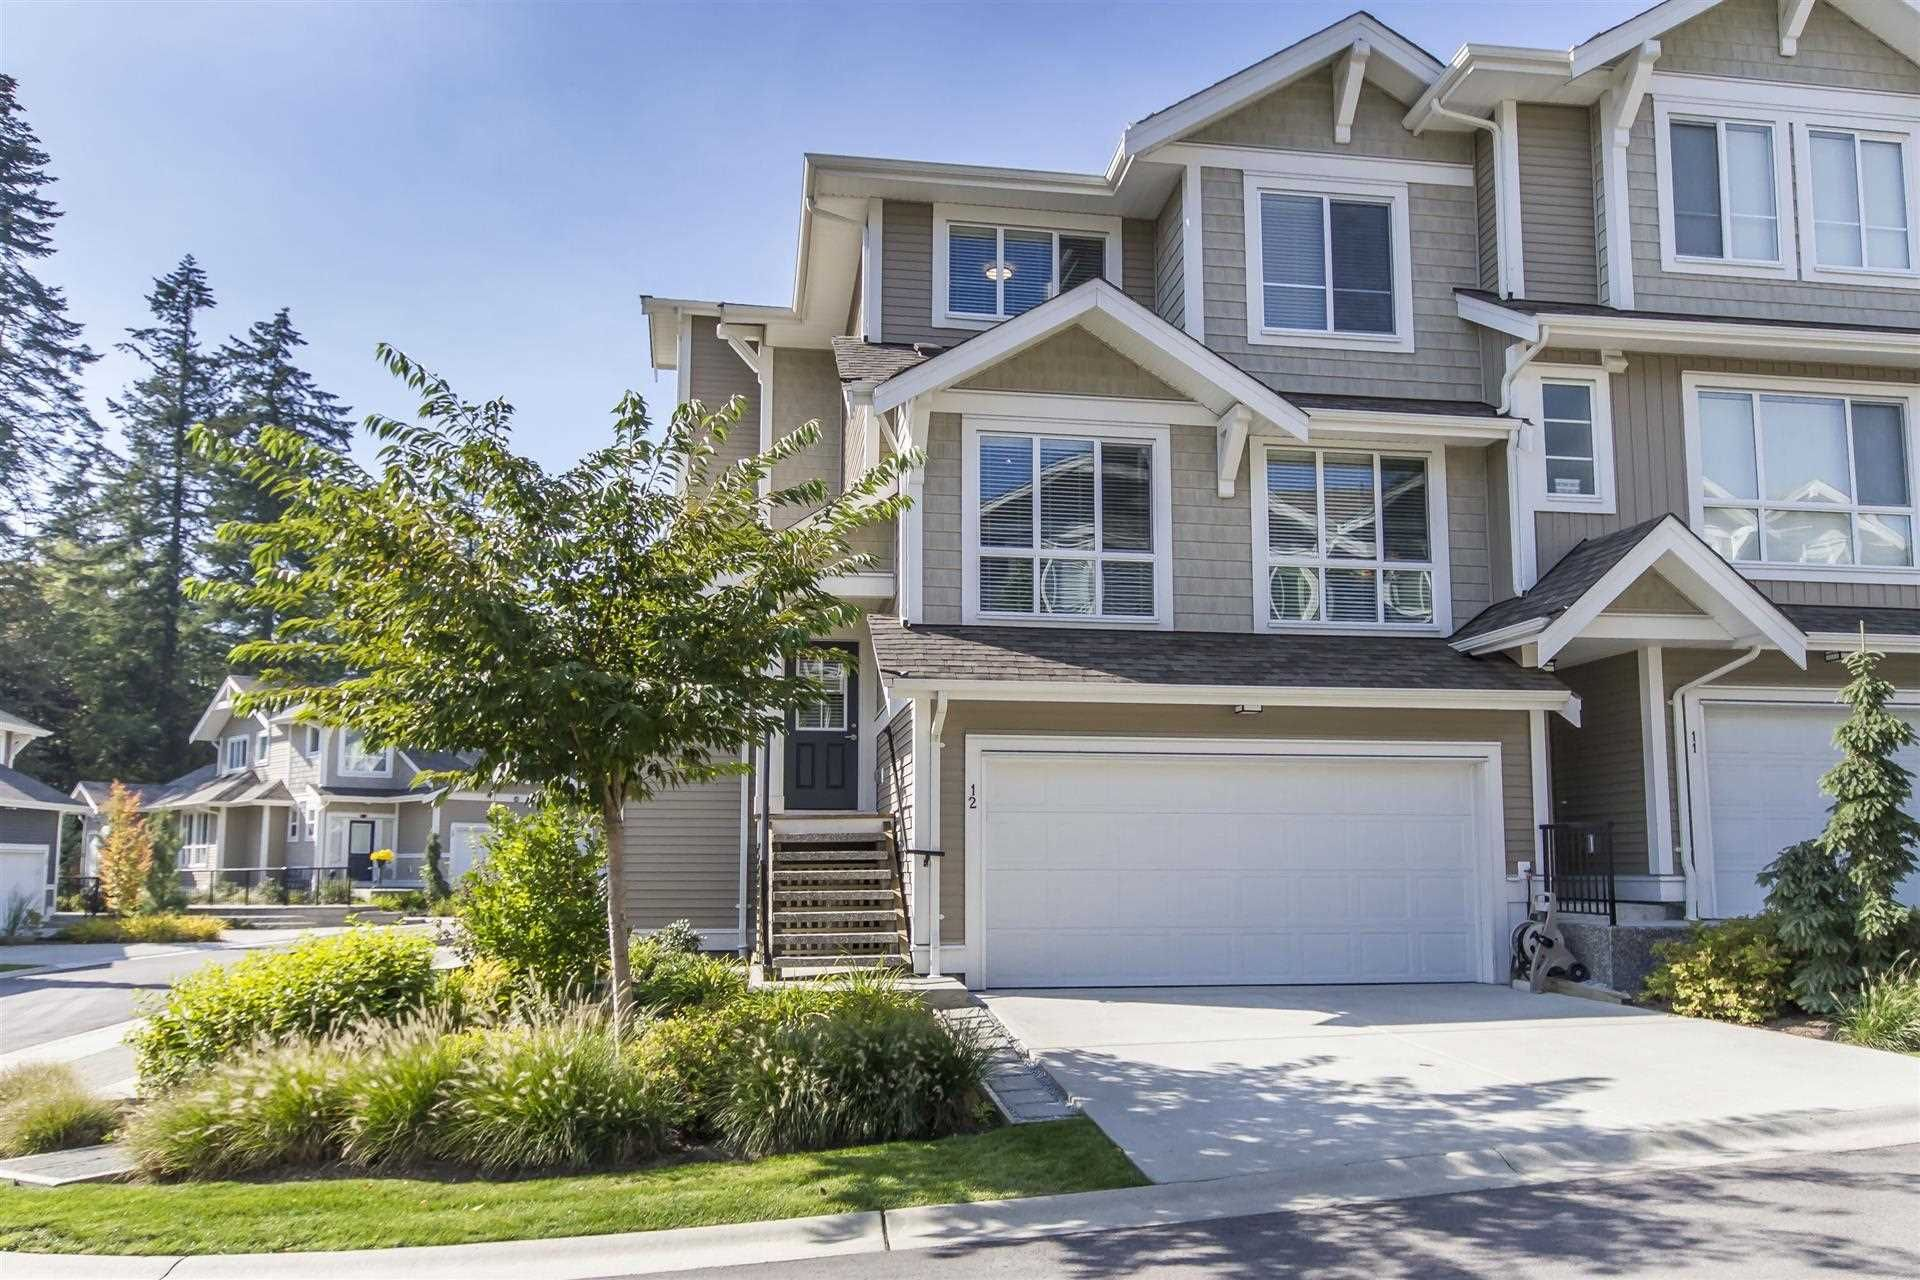 """Main Photo: 12 7059 210 Street in Langley: Willoughby Heights Townhouse for sale in """"Alder at Milner Heights"""" : MLS®# R2606619"""